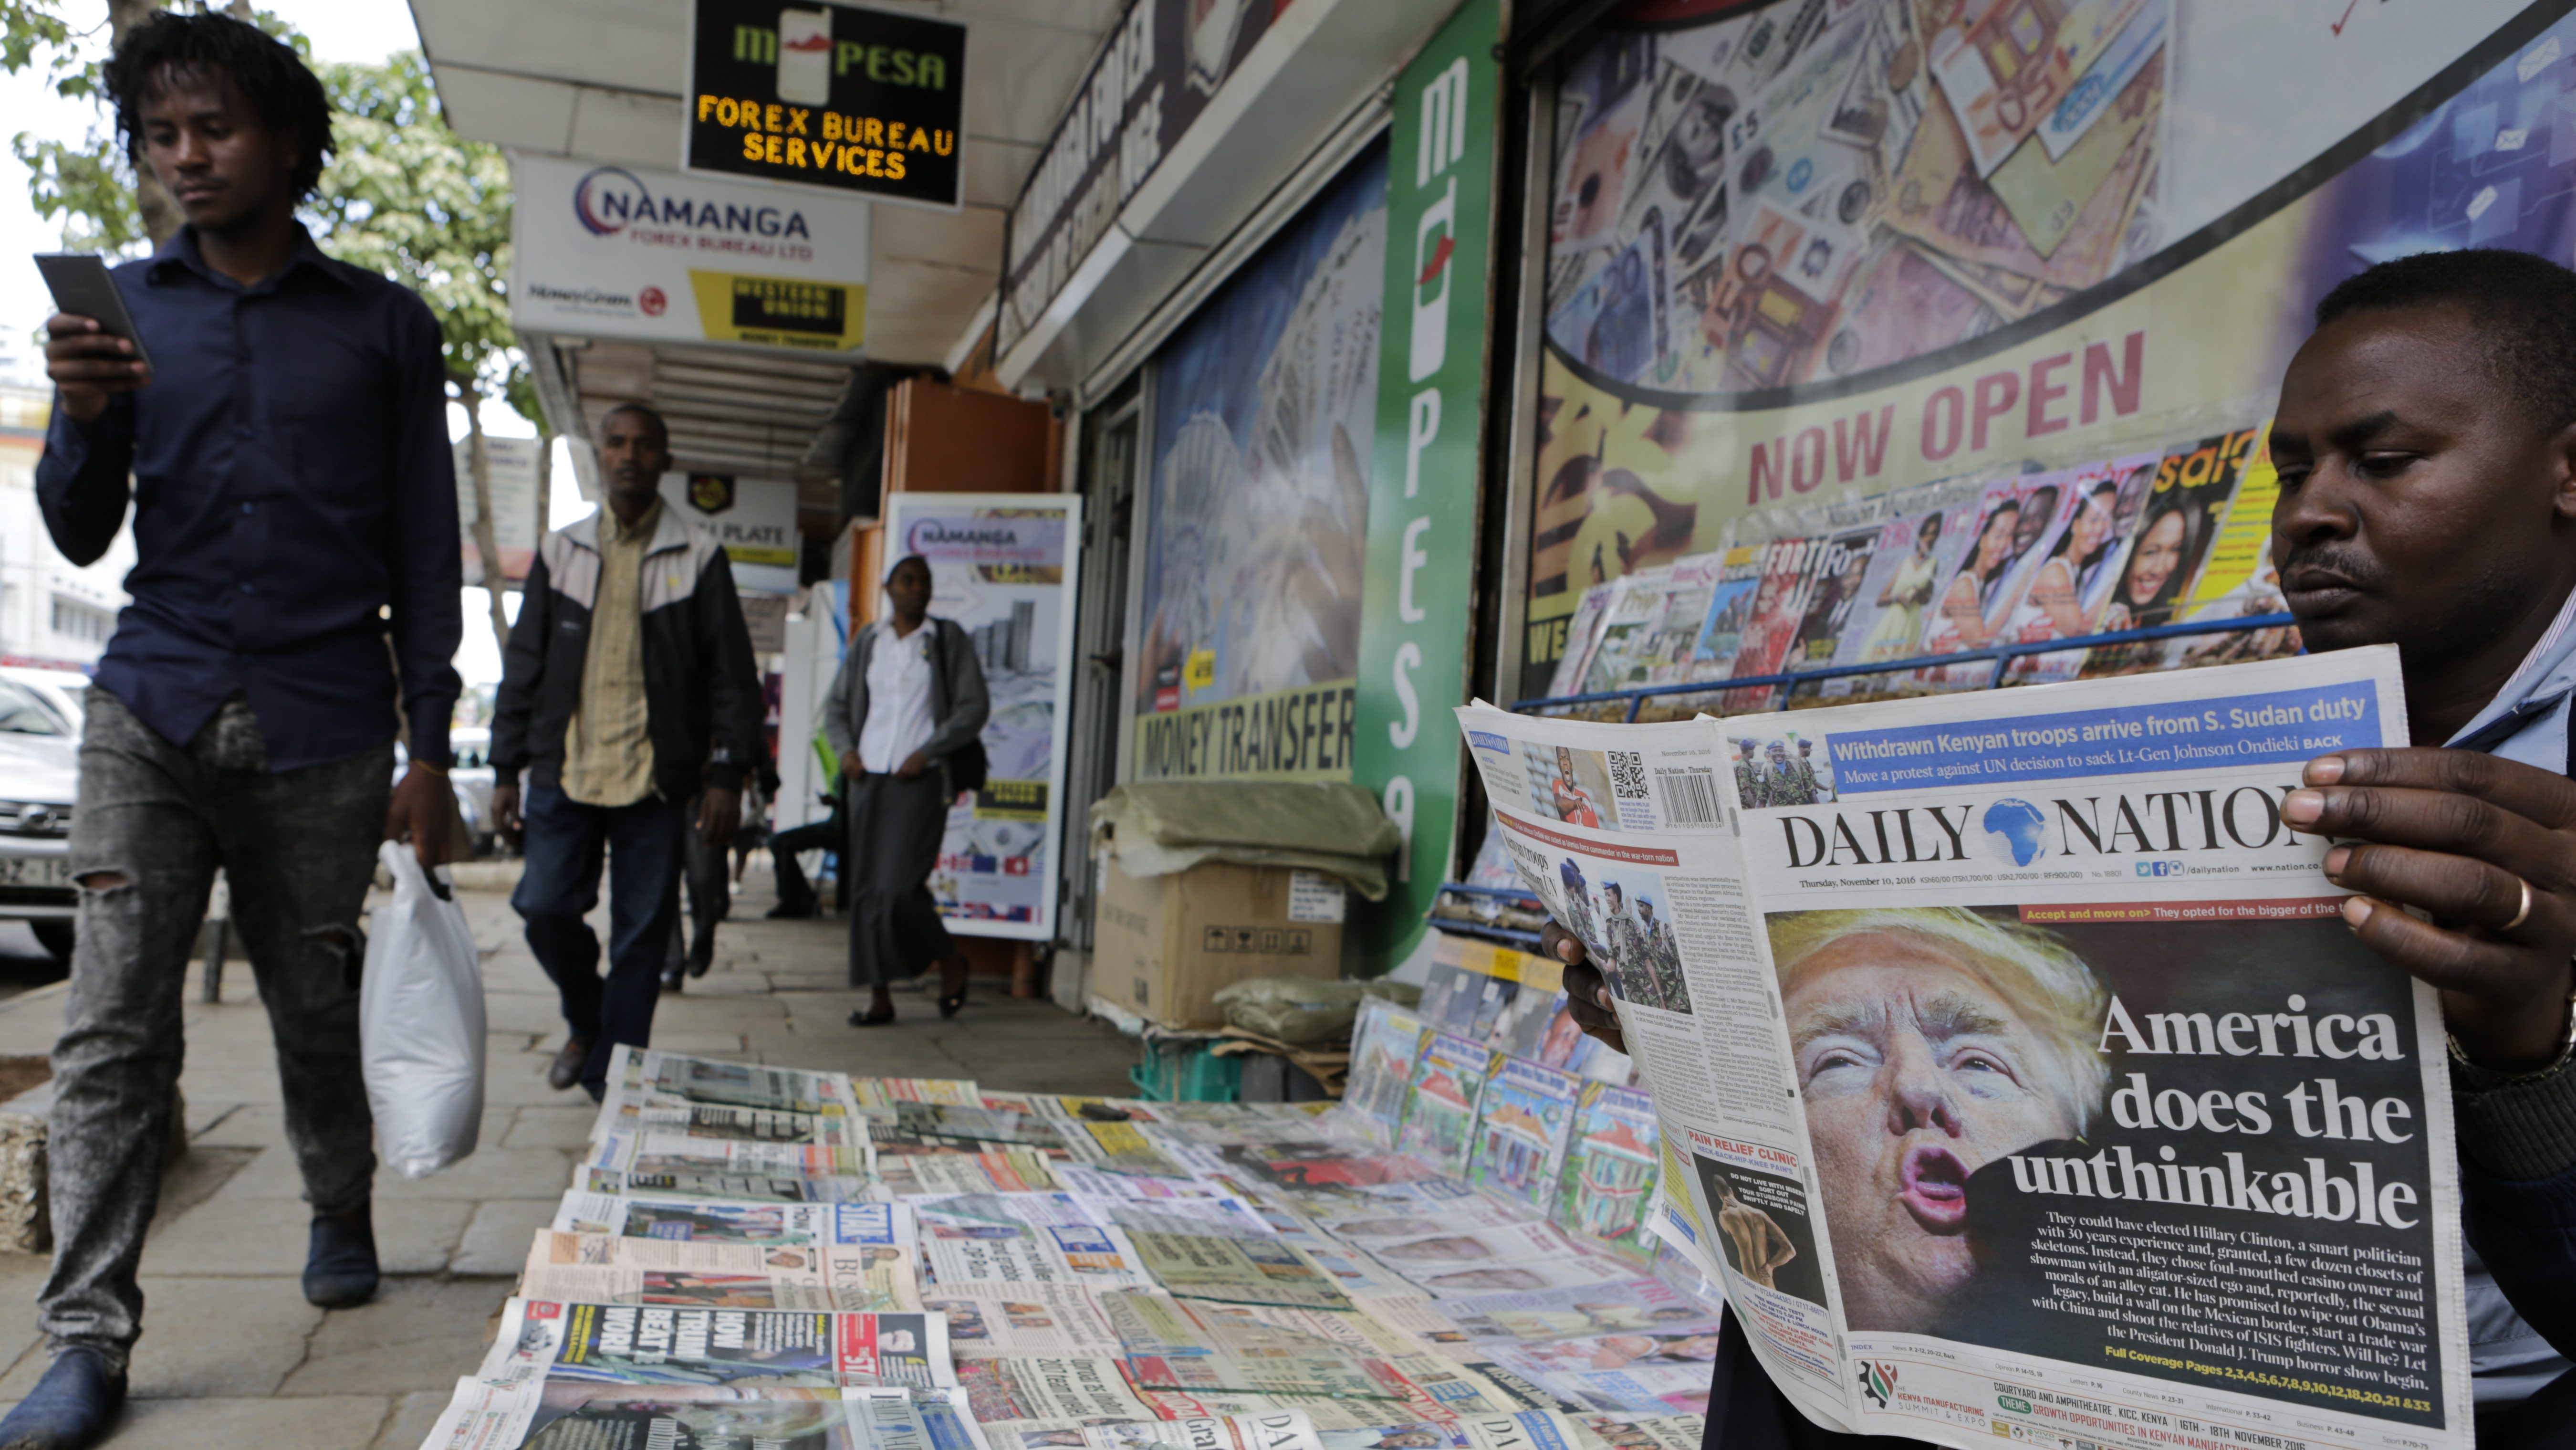 epa05625379 A Kenyan newspaper vendor (R) reads a newspaper featuring front page article about US President-elect Donald Trump as he waits for customers at a street in Nairobi, Kenya, 10 November 2016. Americans on 08 November chose Republican candidate Donald Trump as the 45th President of the United States of America, to serve from 2017 through 2020.